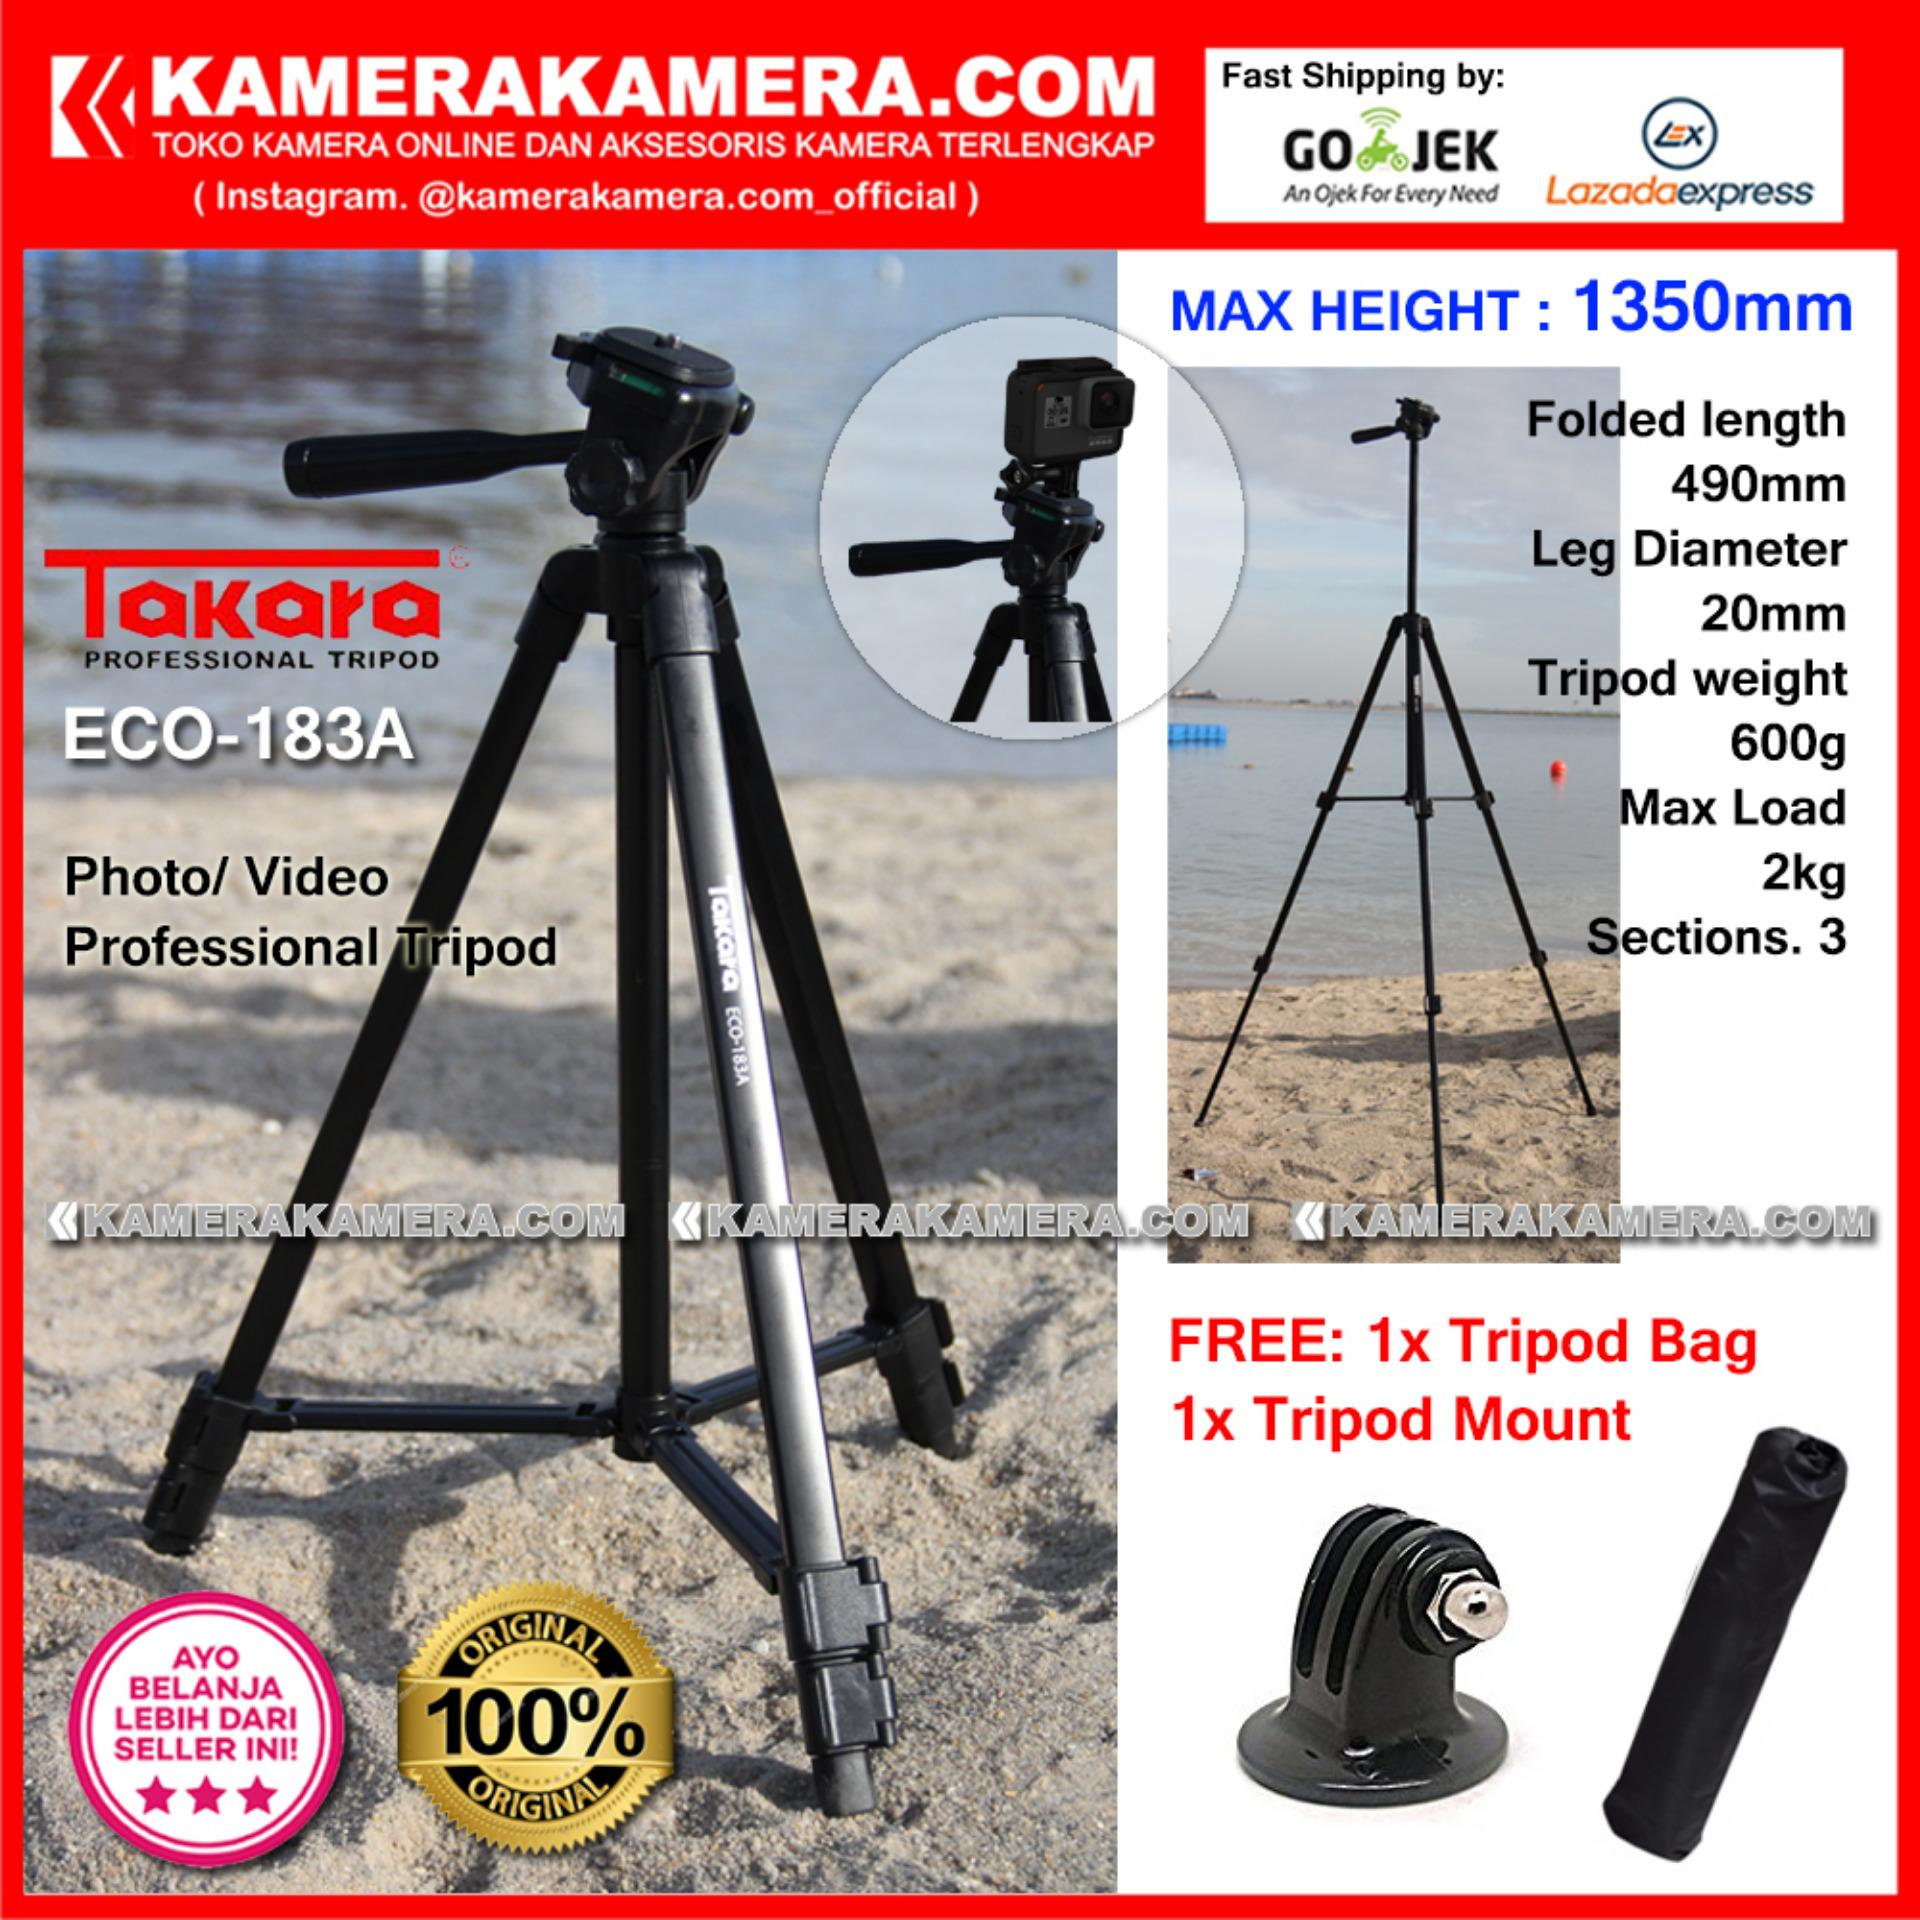 Jual Tripod Monopod Terbaik Gopro Head Strap Mount Gp23 For Hitam Takara Eco 183a Photo Video Professional Max Height 1350mm Free